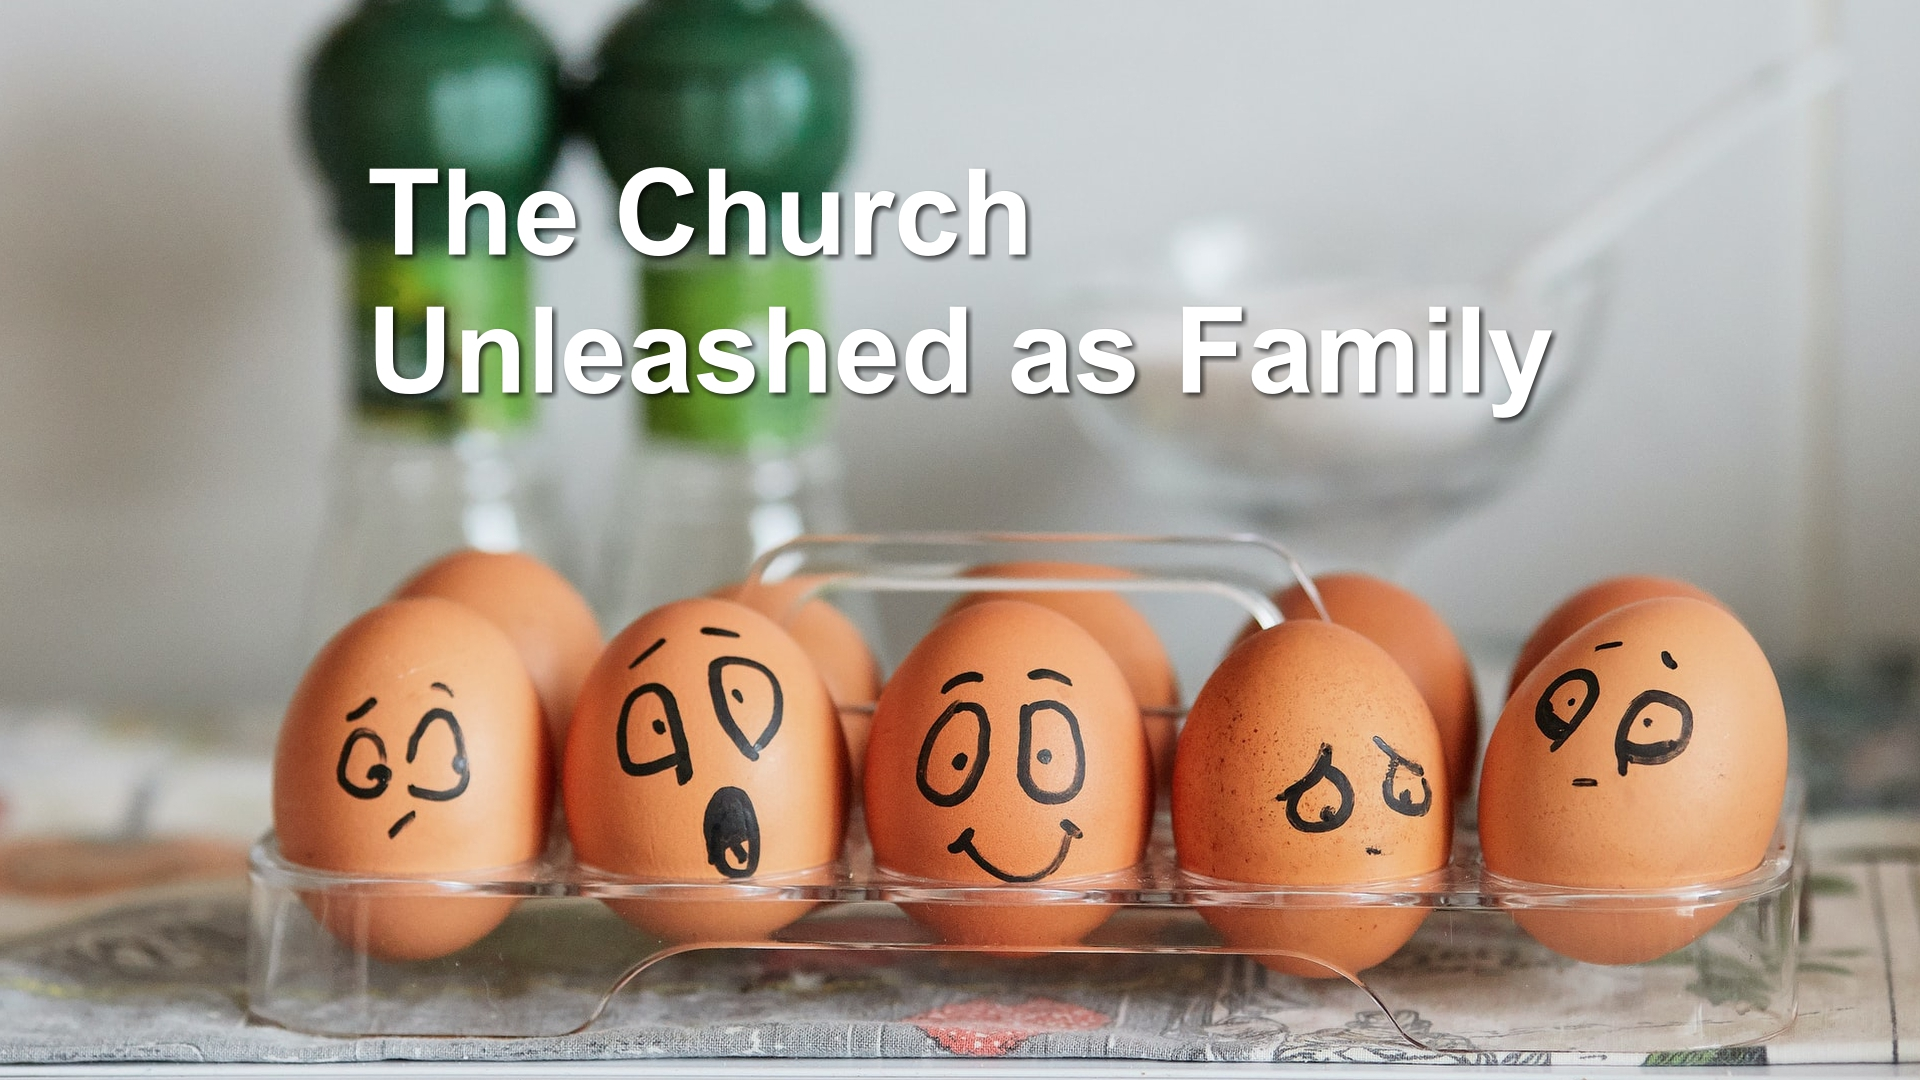 The Church Unleashed as Family